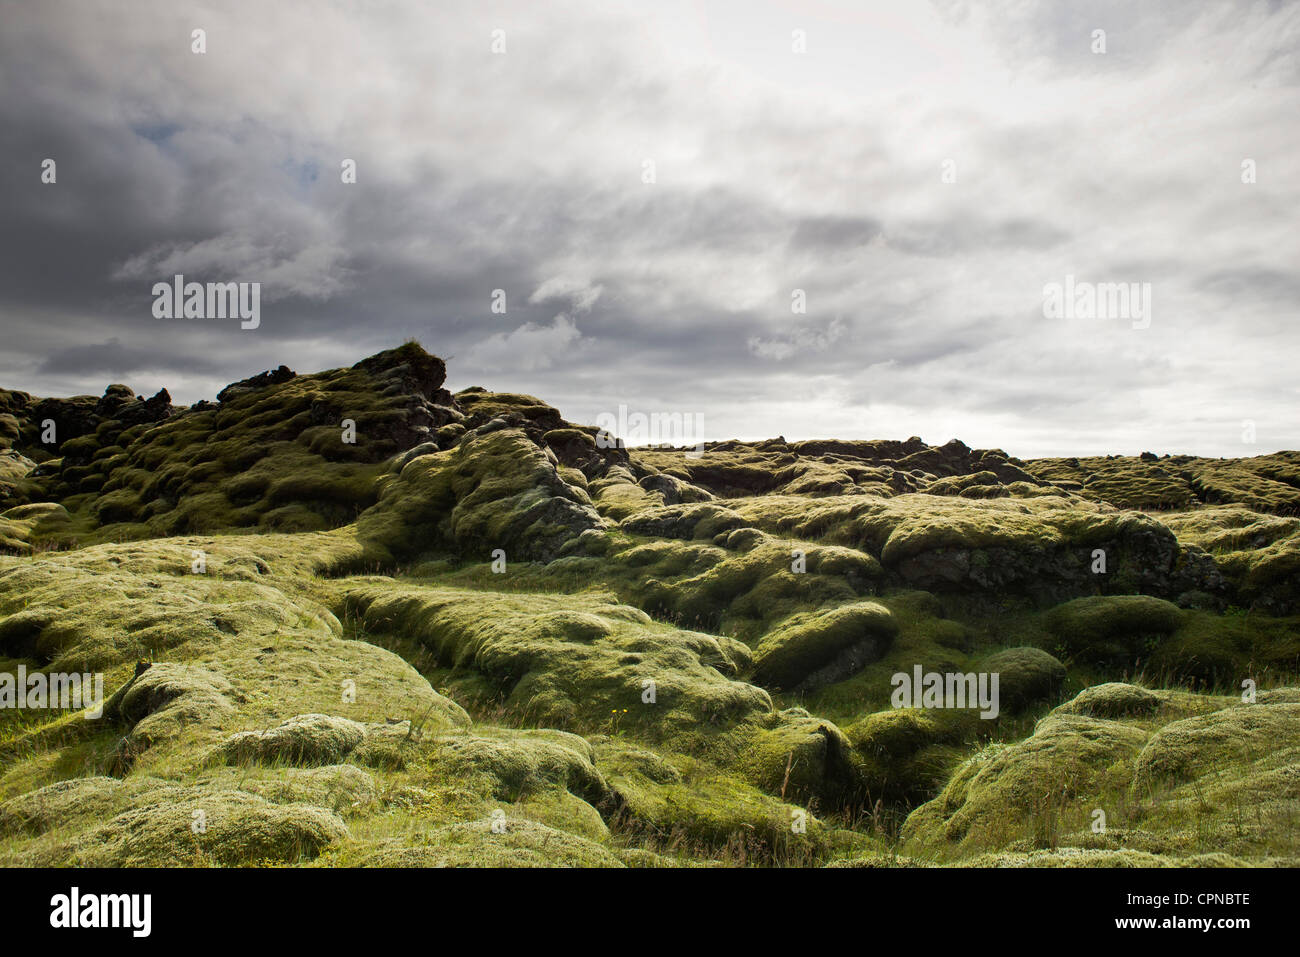 Moss-covered lava field, Iceland - Stock Image